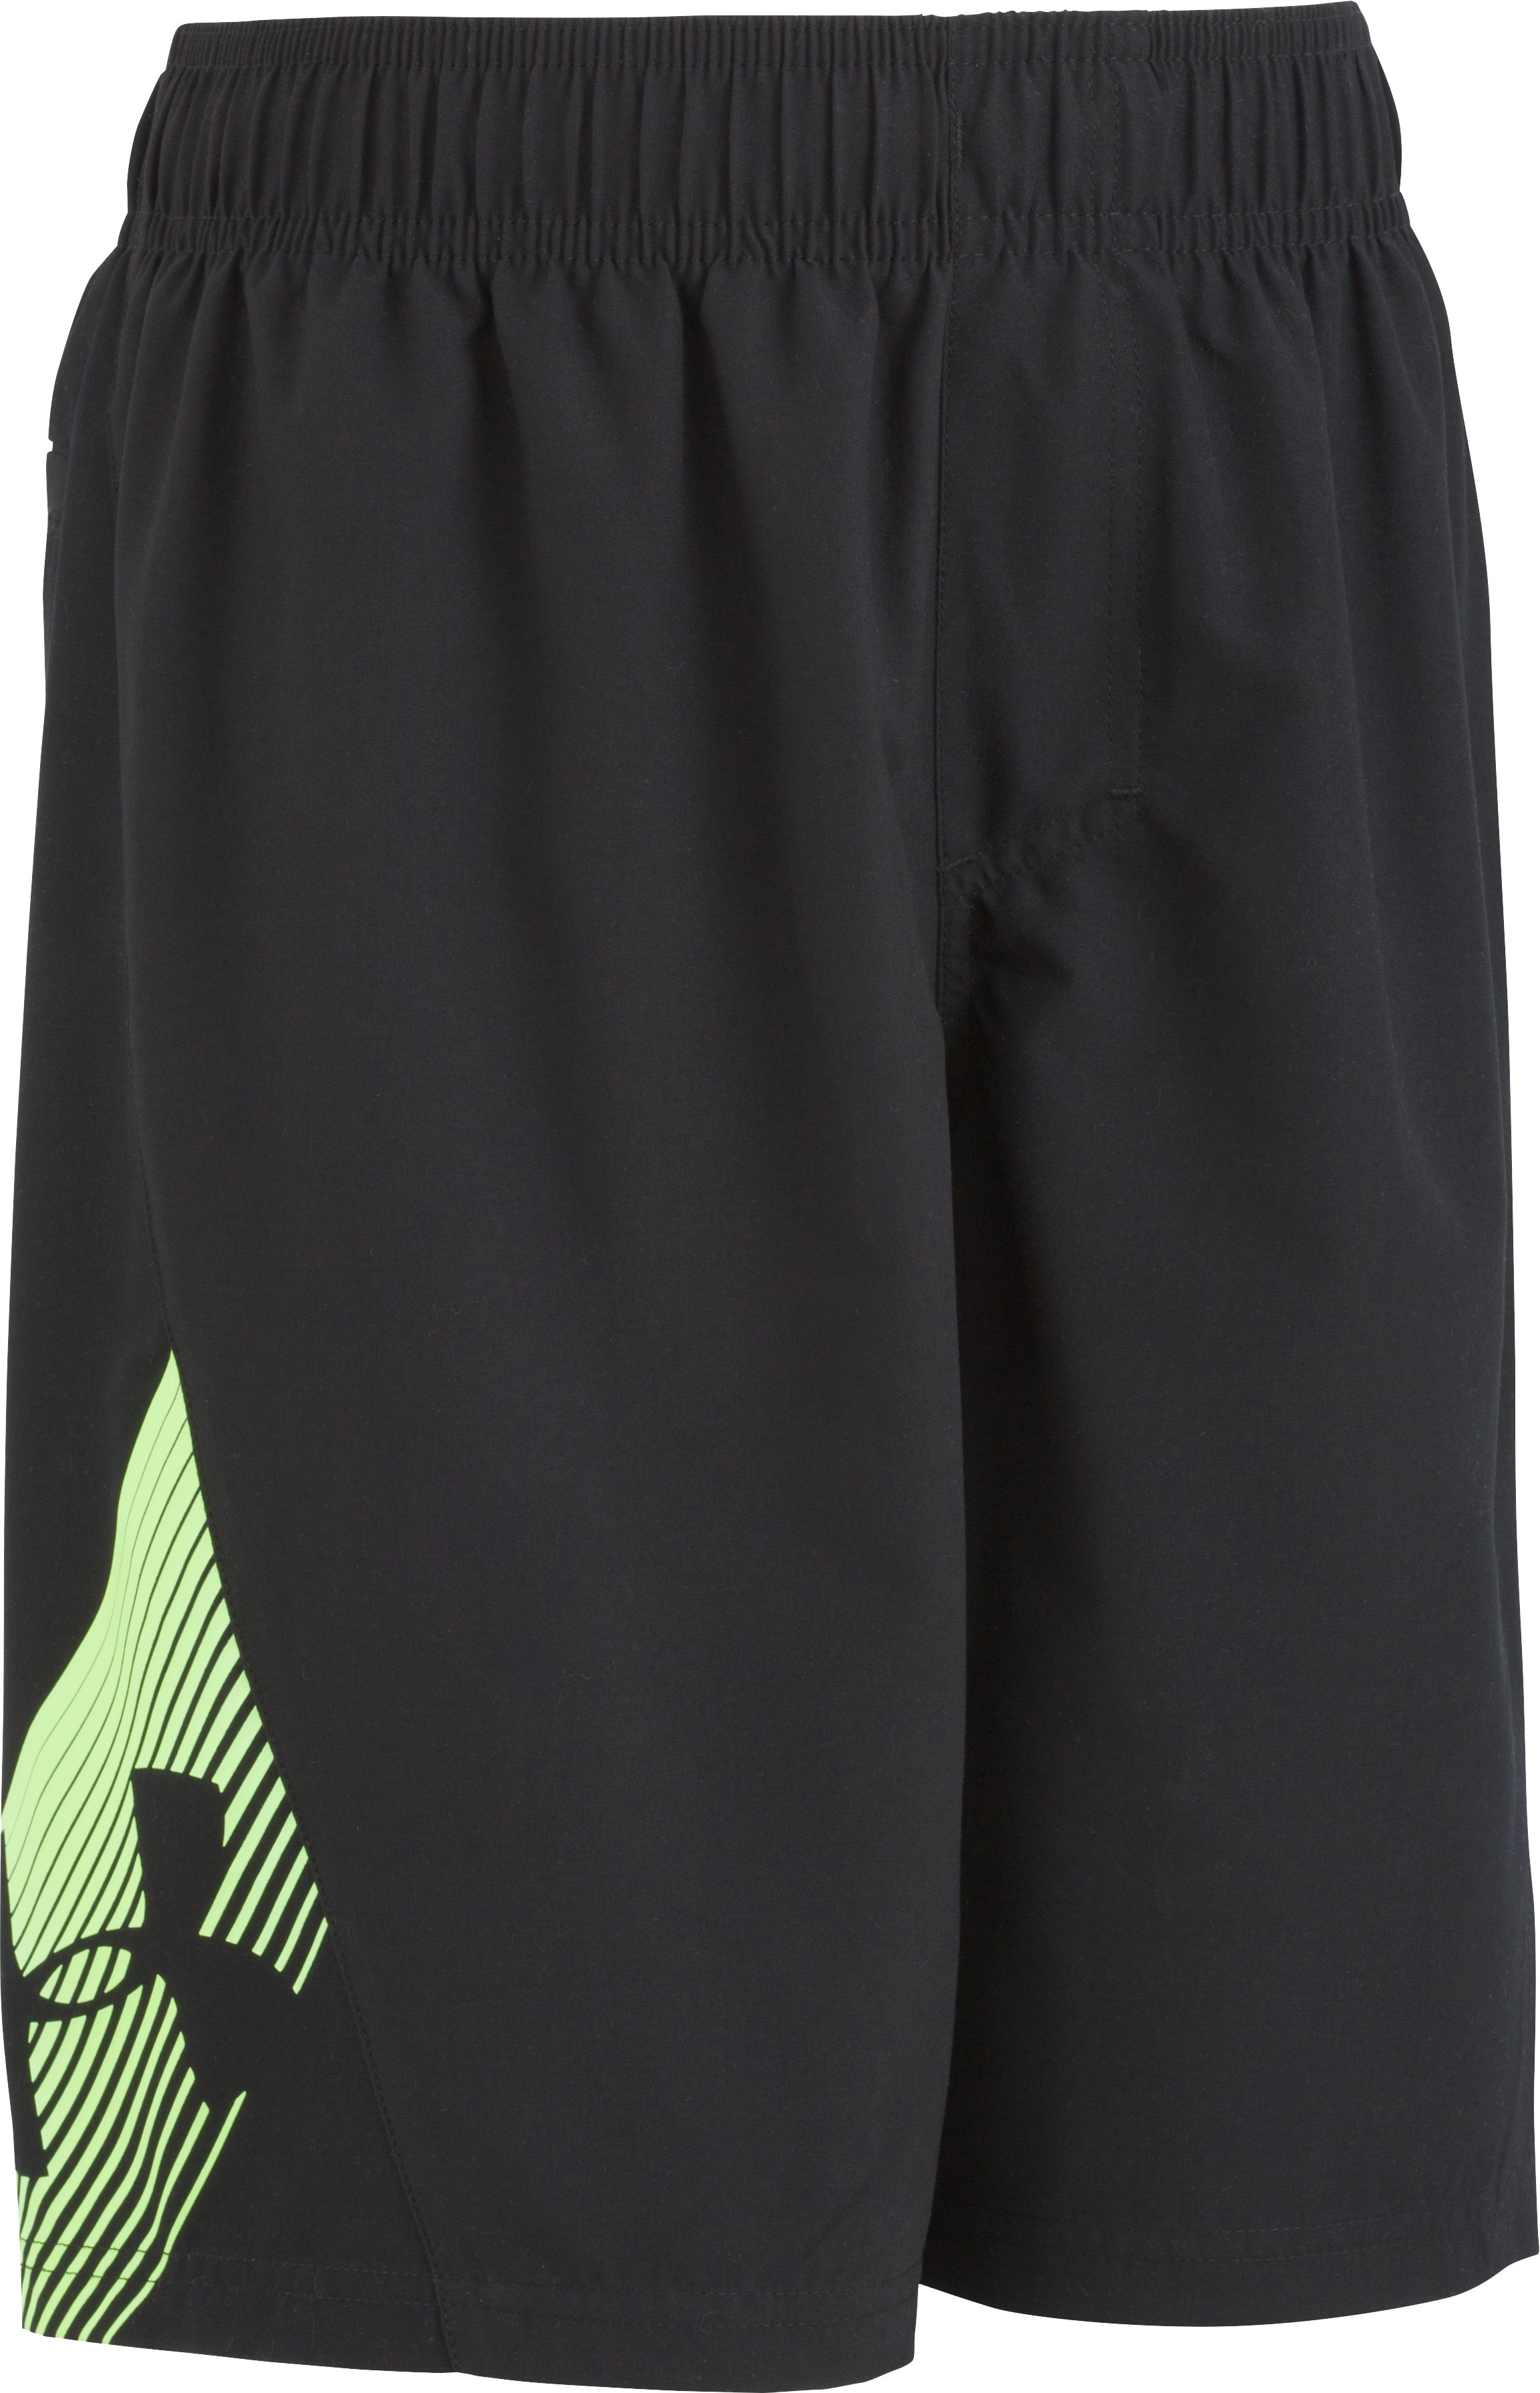 Boys' UA Slash Volley Shorts, Black